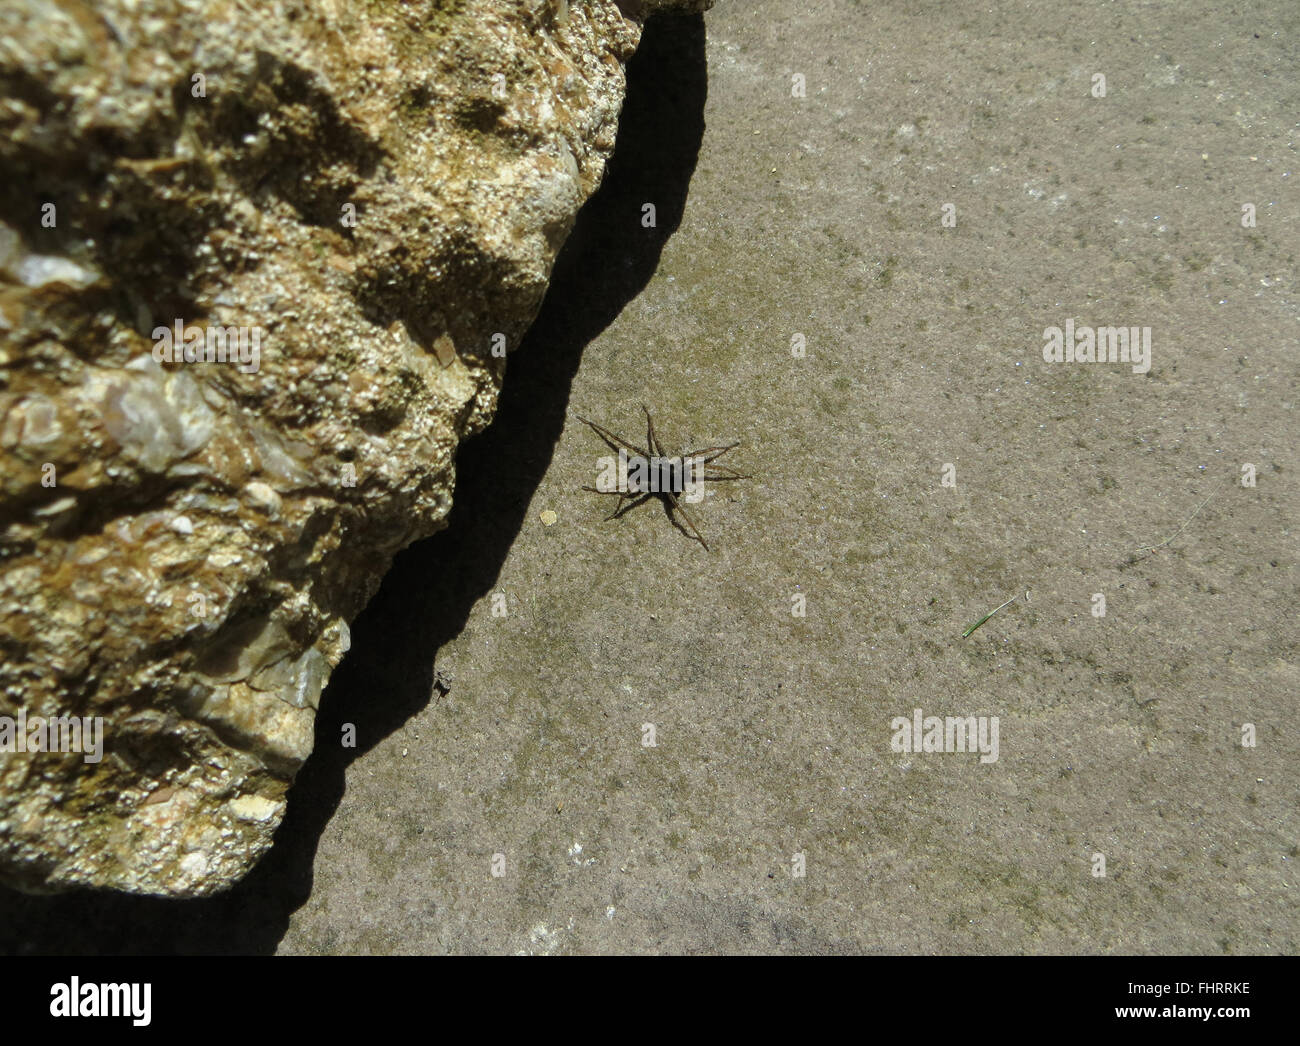 Spotted wolf spider (Pardosa amentata) on limestone paving stone by sandstone rock - Stock Image